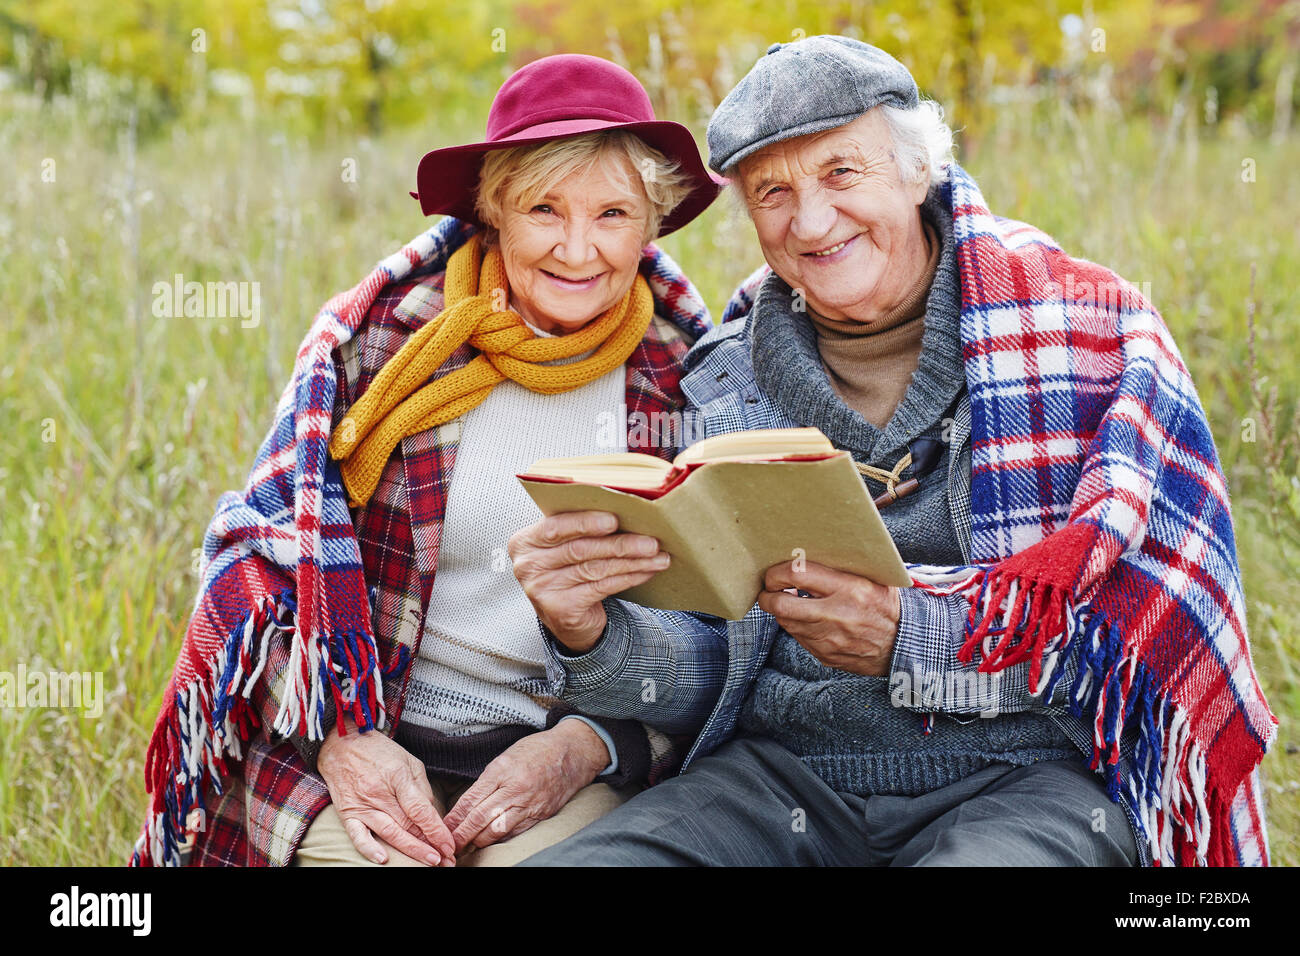 Retired seniors reading book outdoors - Stock Image